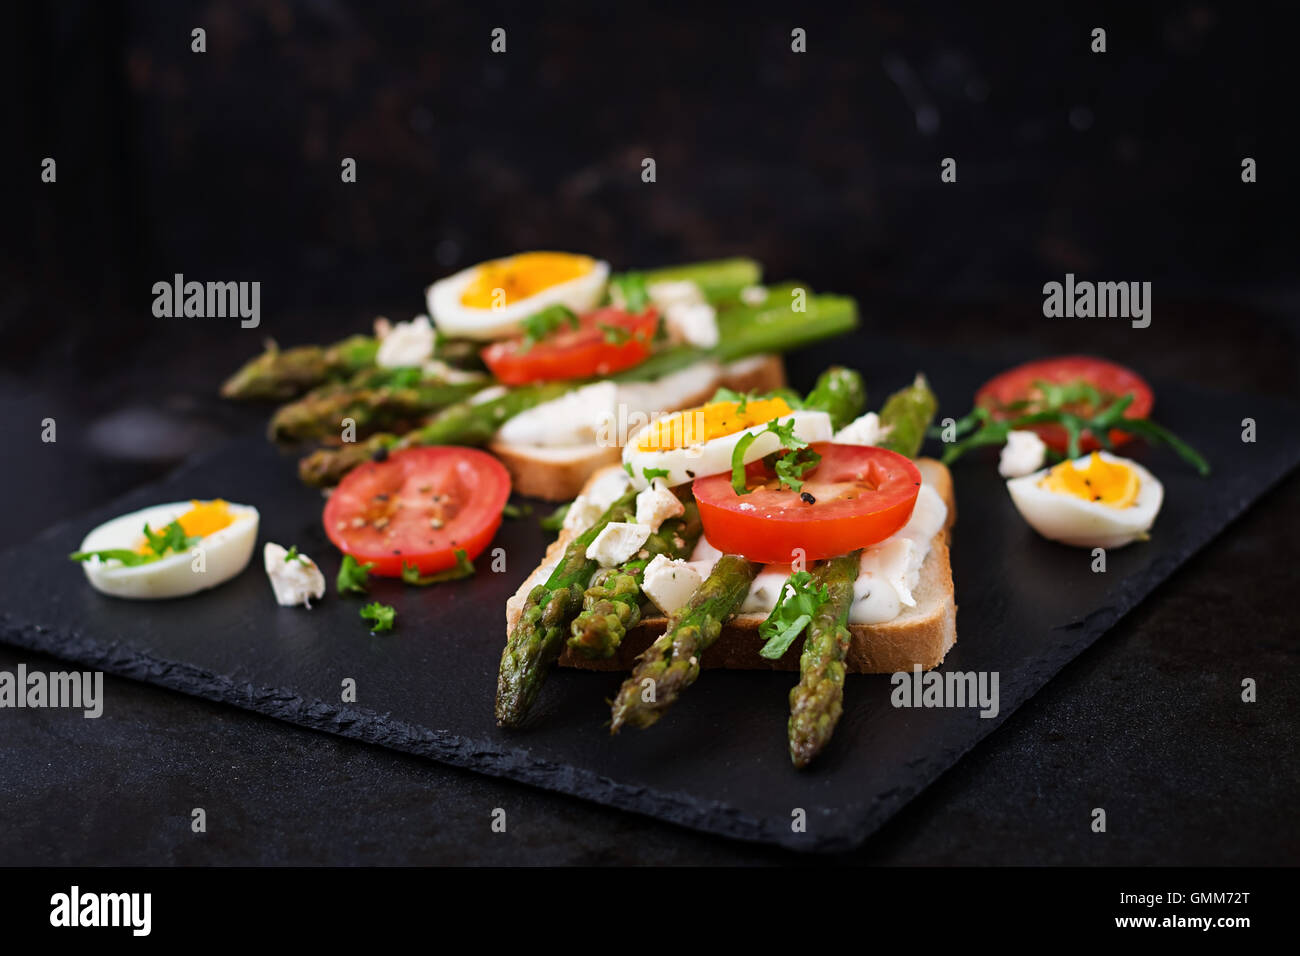 Sandwiches with caramelized asparagus, feta cheese, tomatoes and eggs. - Stock Image